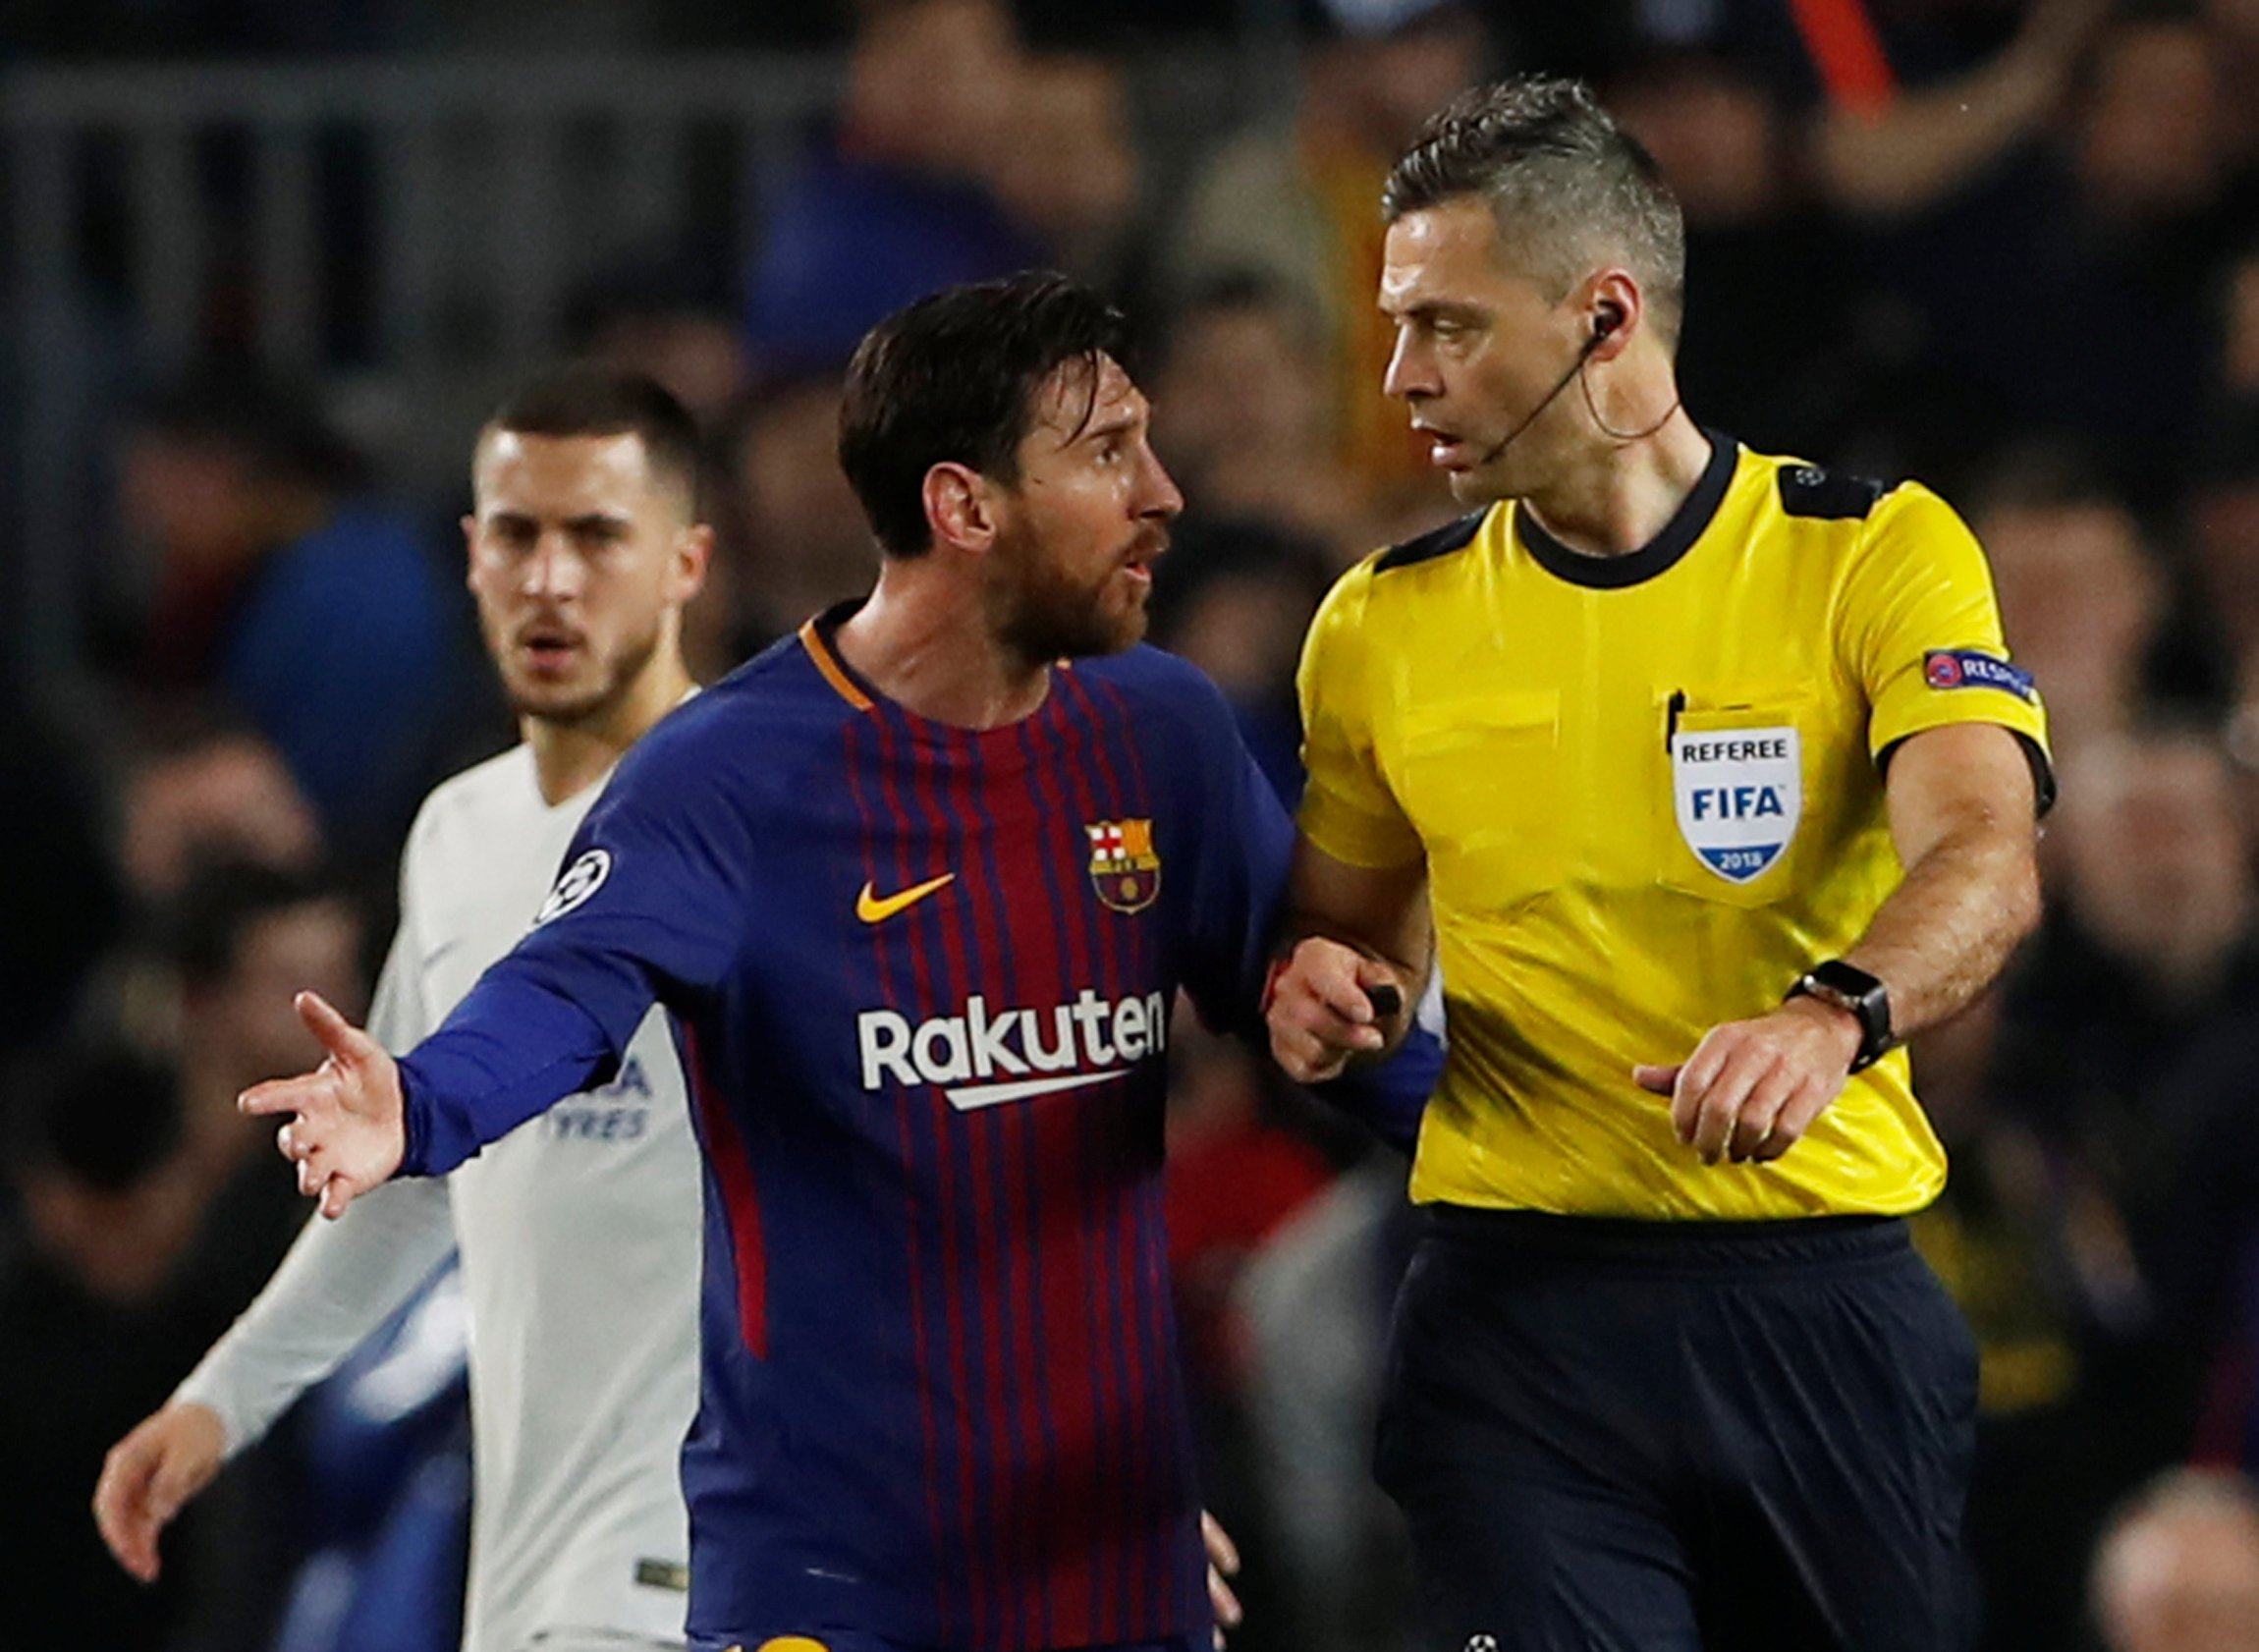 Soccer Football - Champions League Round of 16 Second Leg - FC Barcelona vs Chelsea - Camp Nou, Barcelona, Spain - March 14, 2018 Barcelona???s Lionel Messi speaks with referee Damir Skomina Action Images via Reuters/Lee Smith